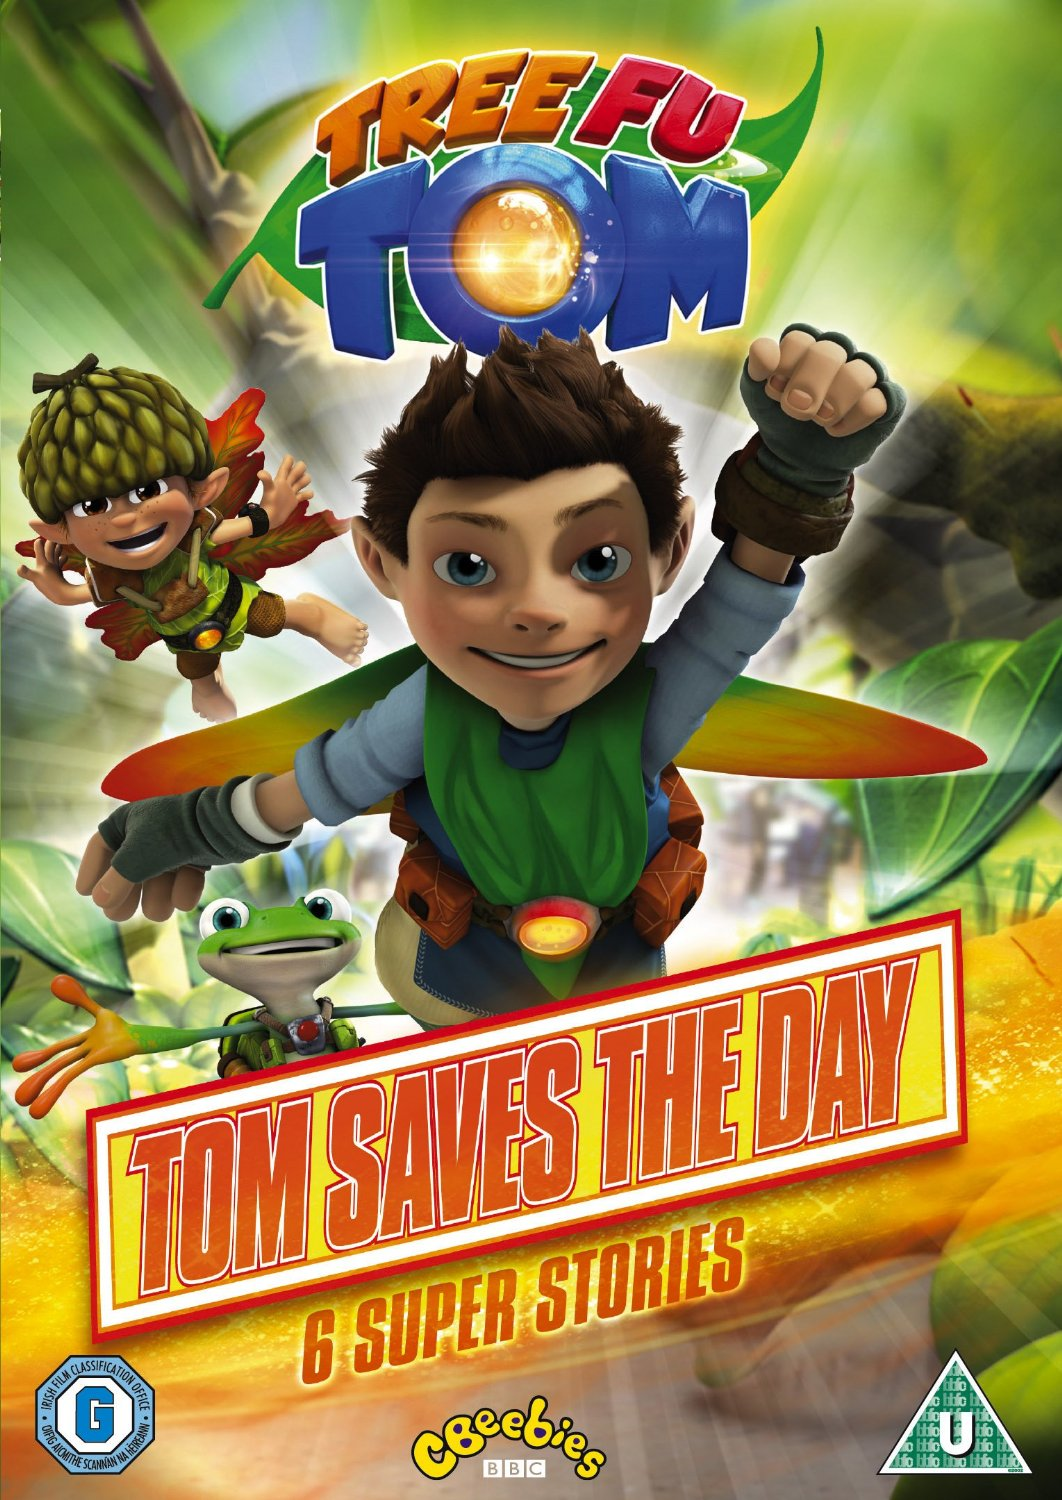 Tree Fu Tom: Tom Saves the Day - Review and Giveaway DVD